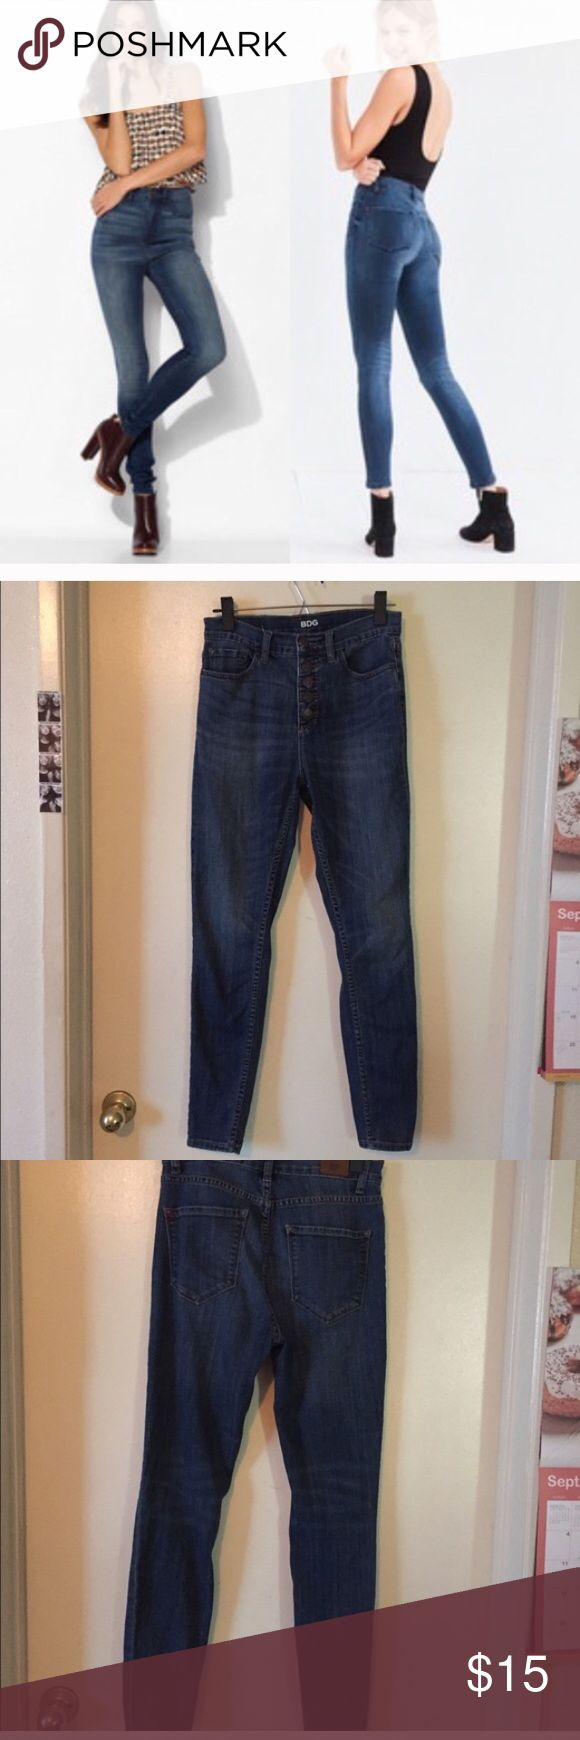 BDG ultra high rise button fly jeans Urban outfitters ultra high rise twig button fly jeans. Gently loved. Urban Outfitters Jeans Skinny